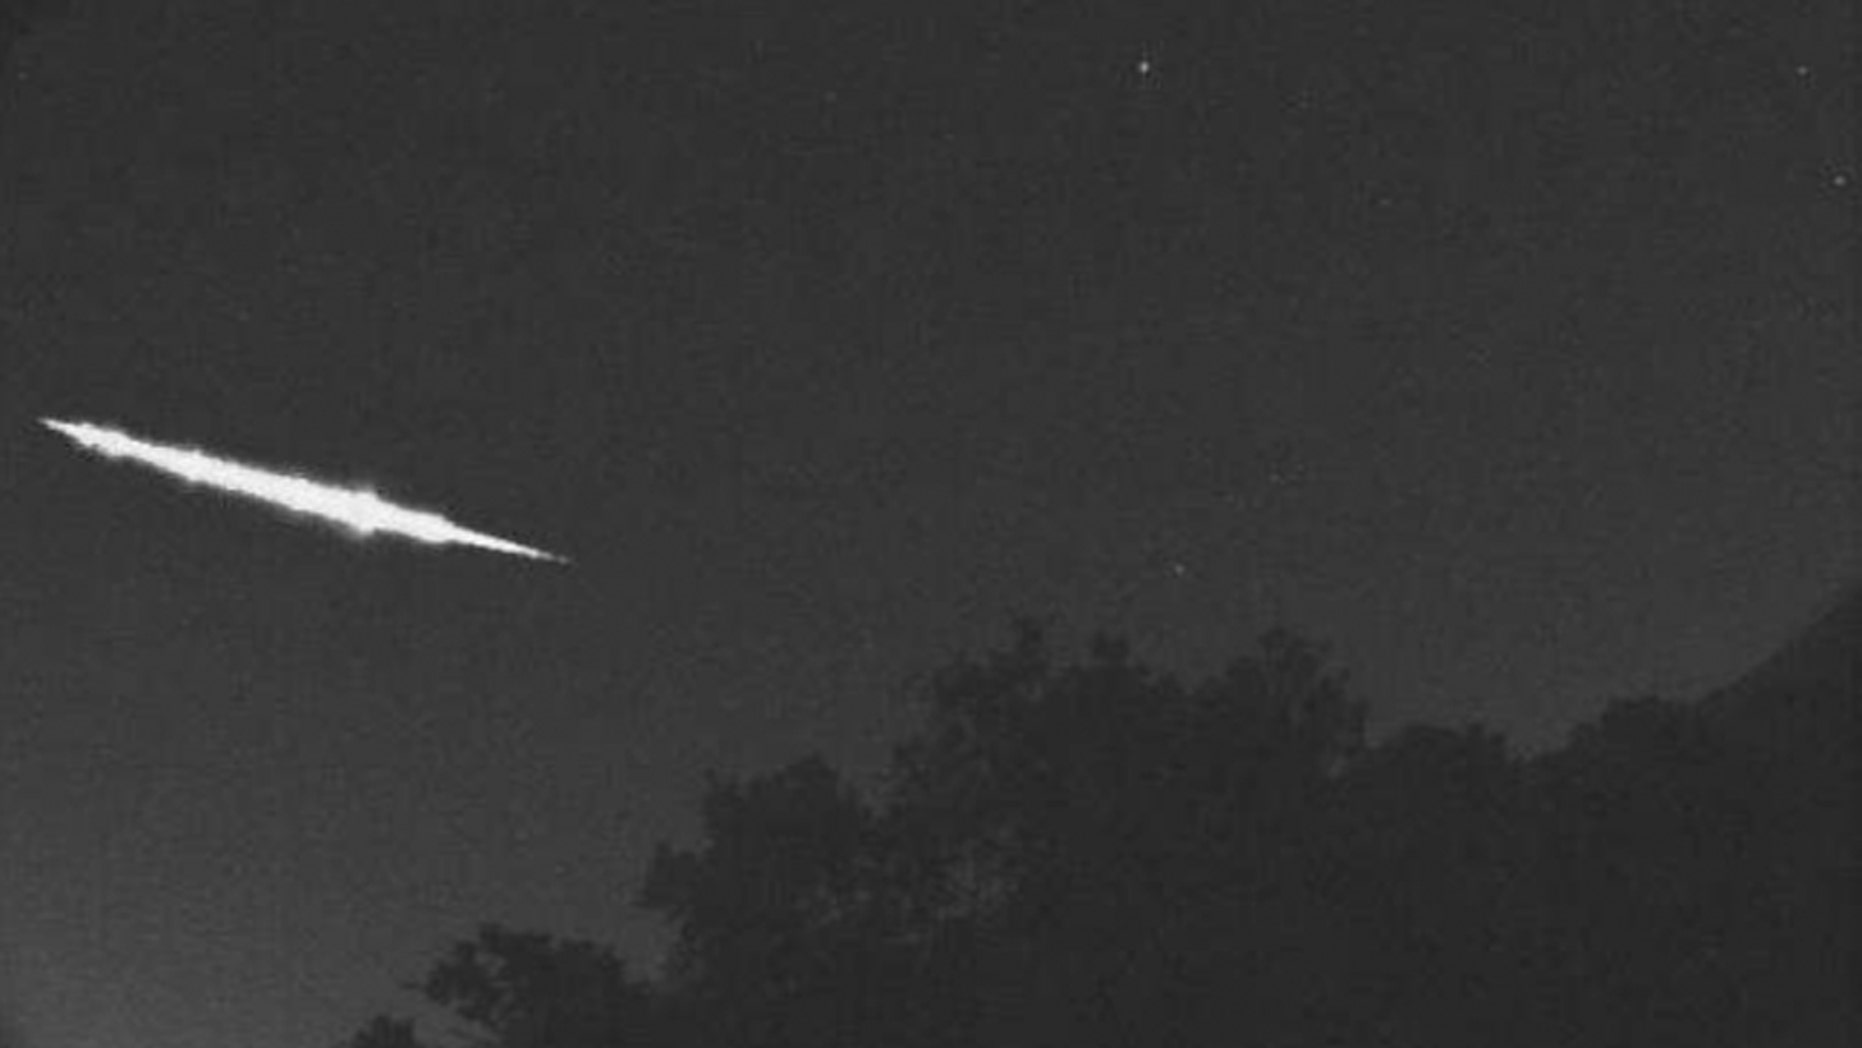 A still from a video shows a fireball passing over Kyoto, Japan after 1 a.m. on April 28, 2017. (Credit: SonataCo Network)